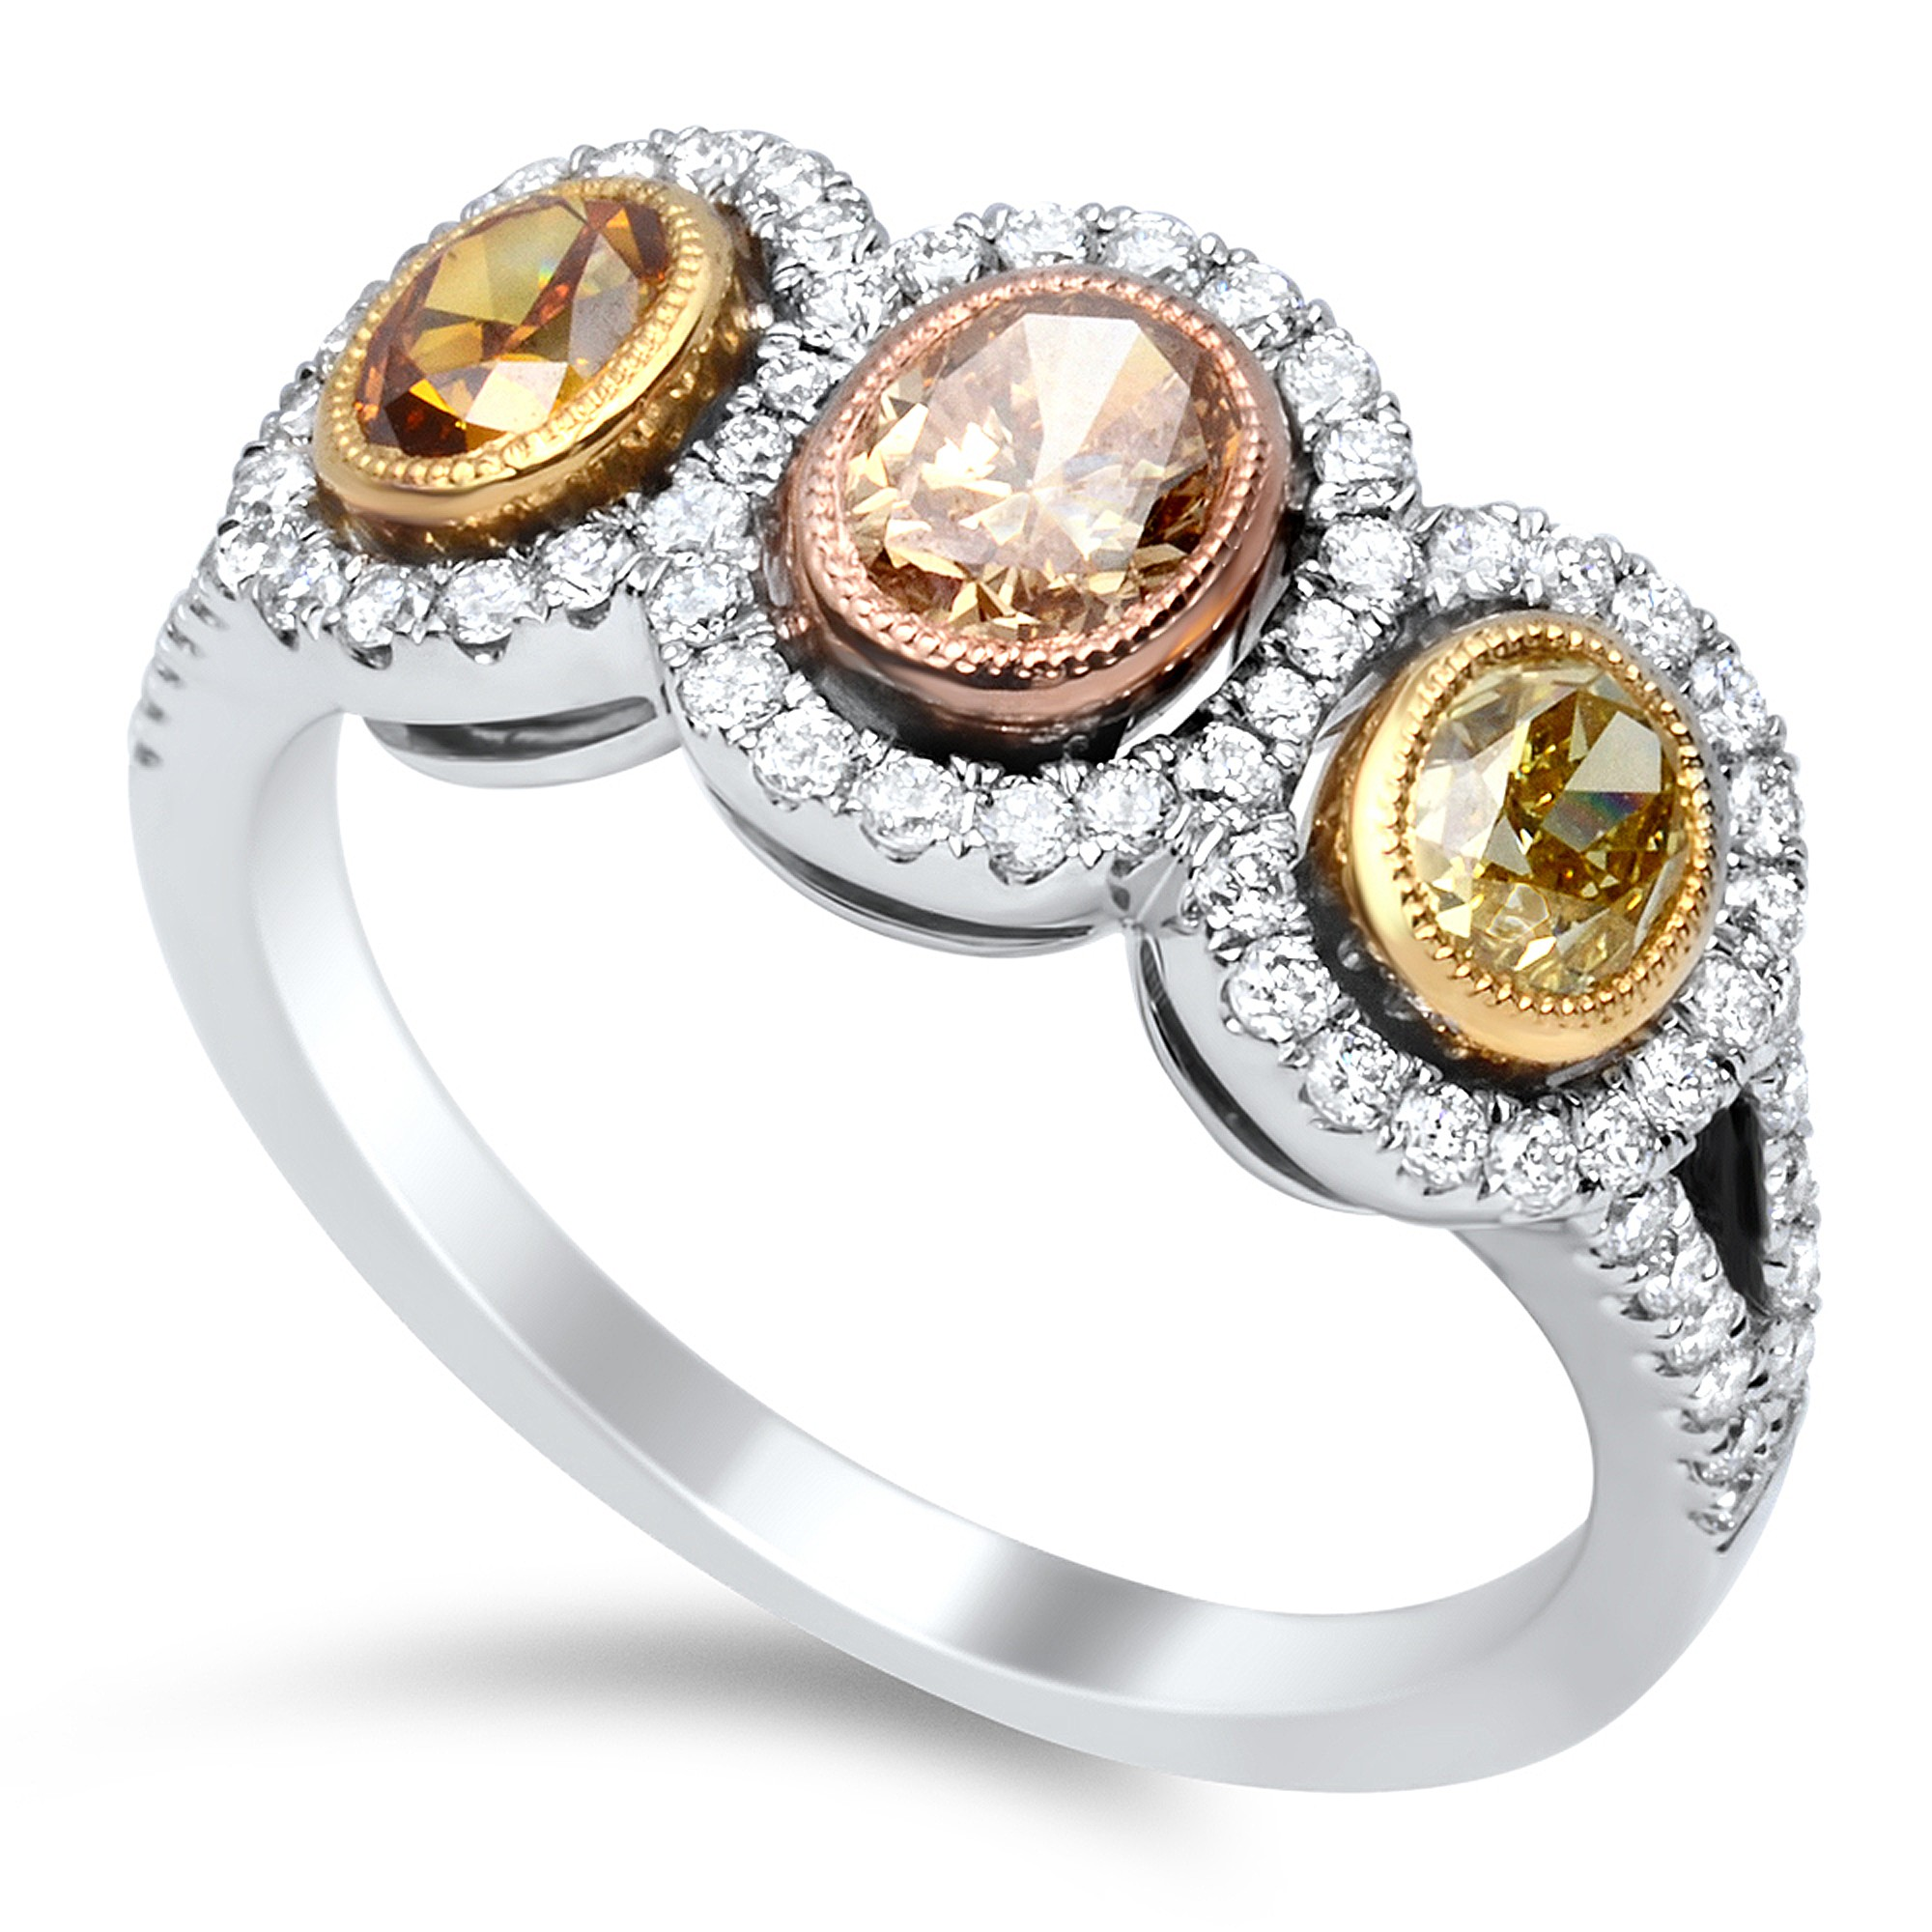 Image 11 of Colored Diamond Engagement Rings: What's the Buzz?